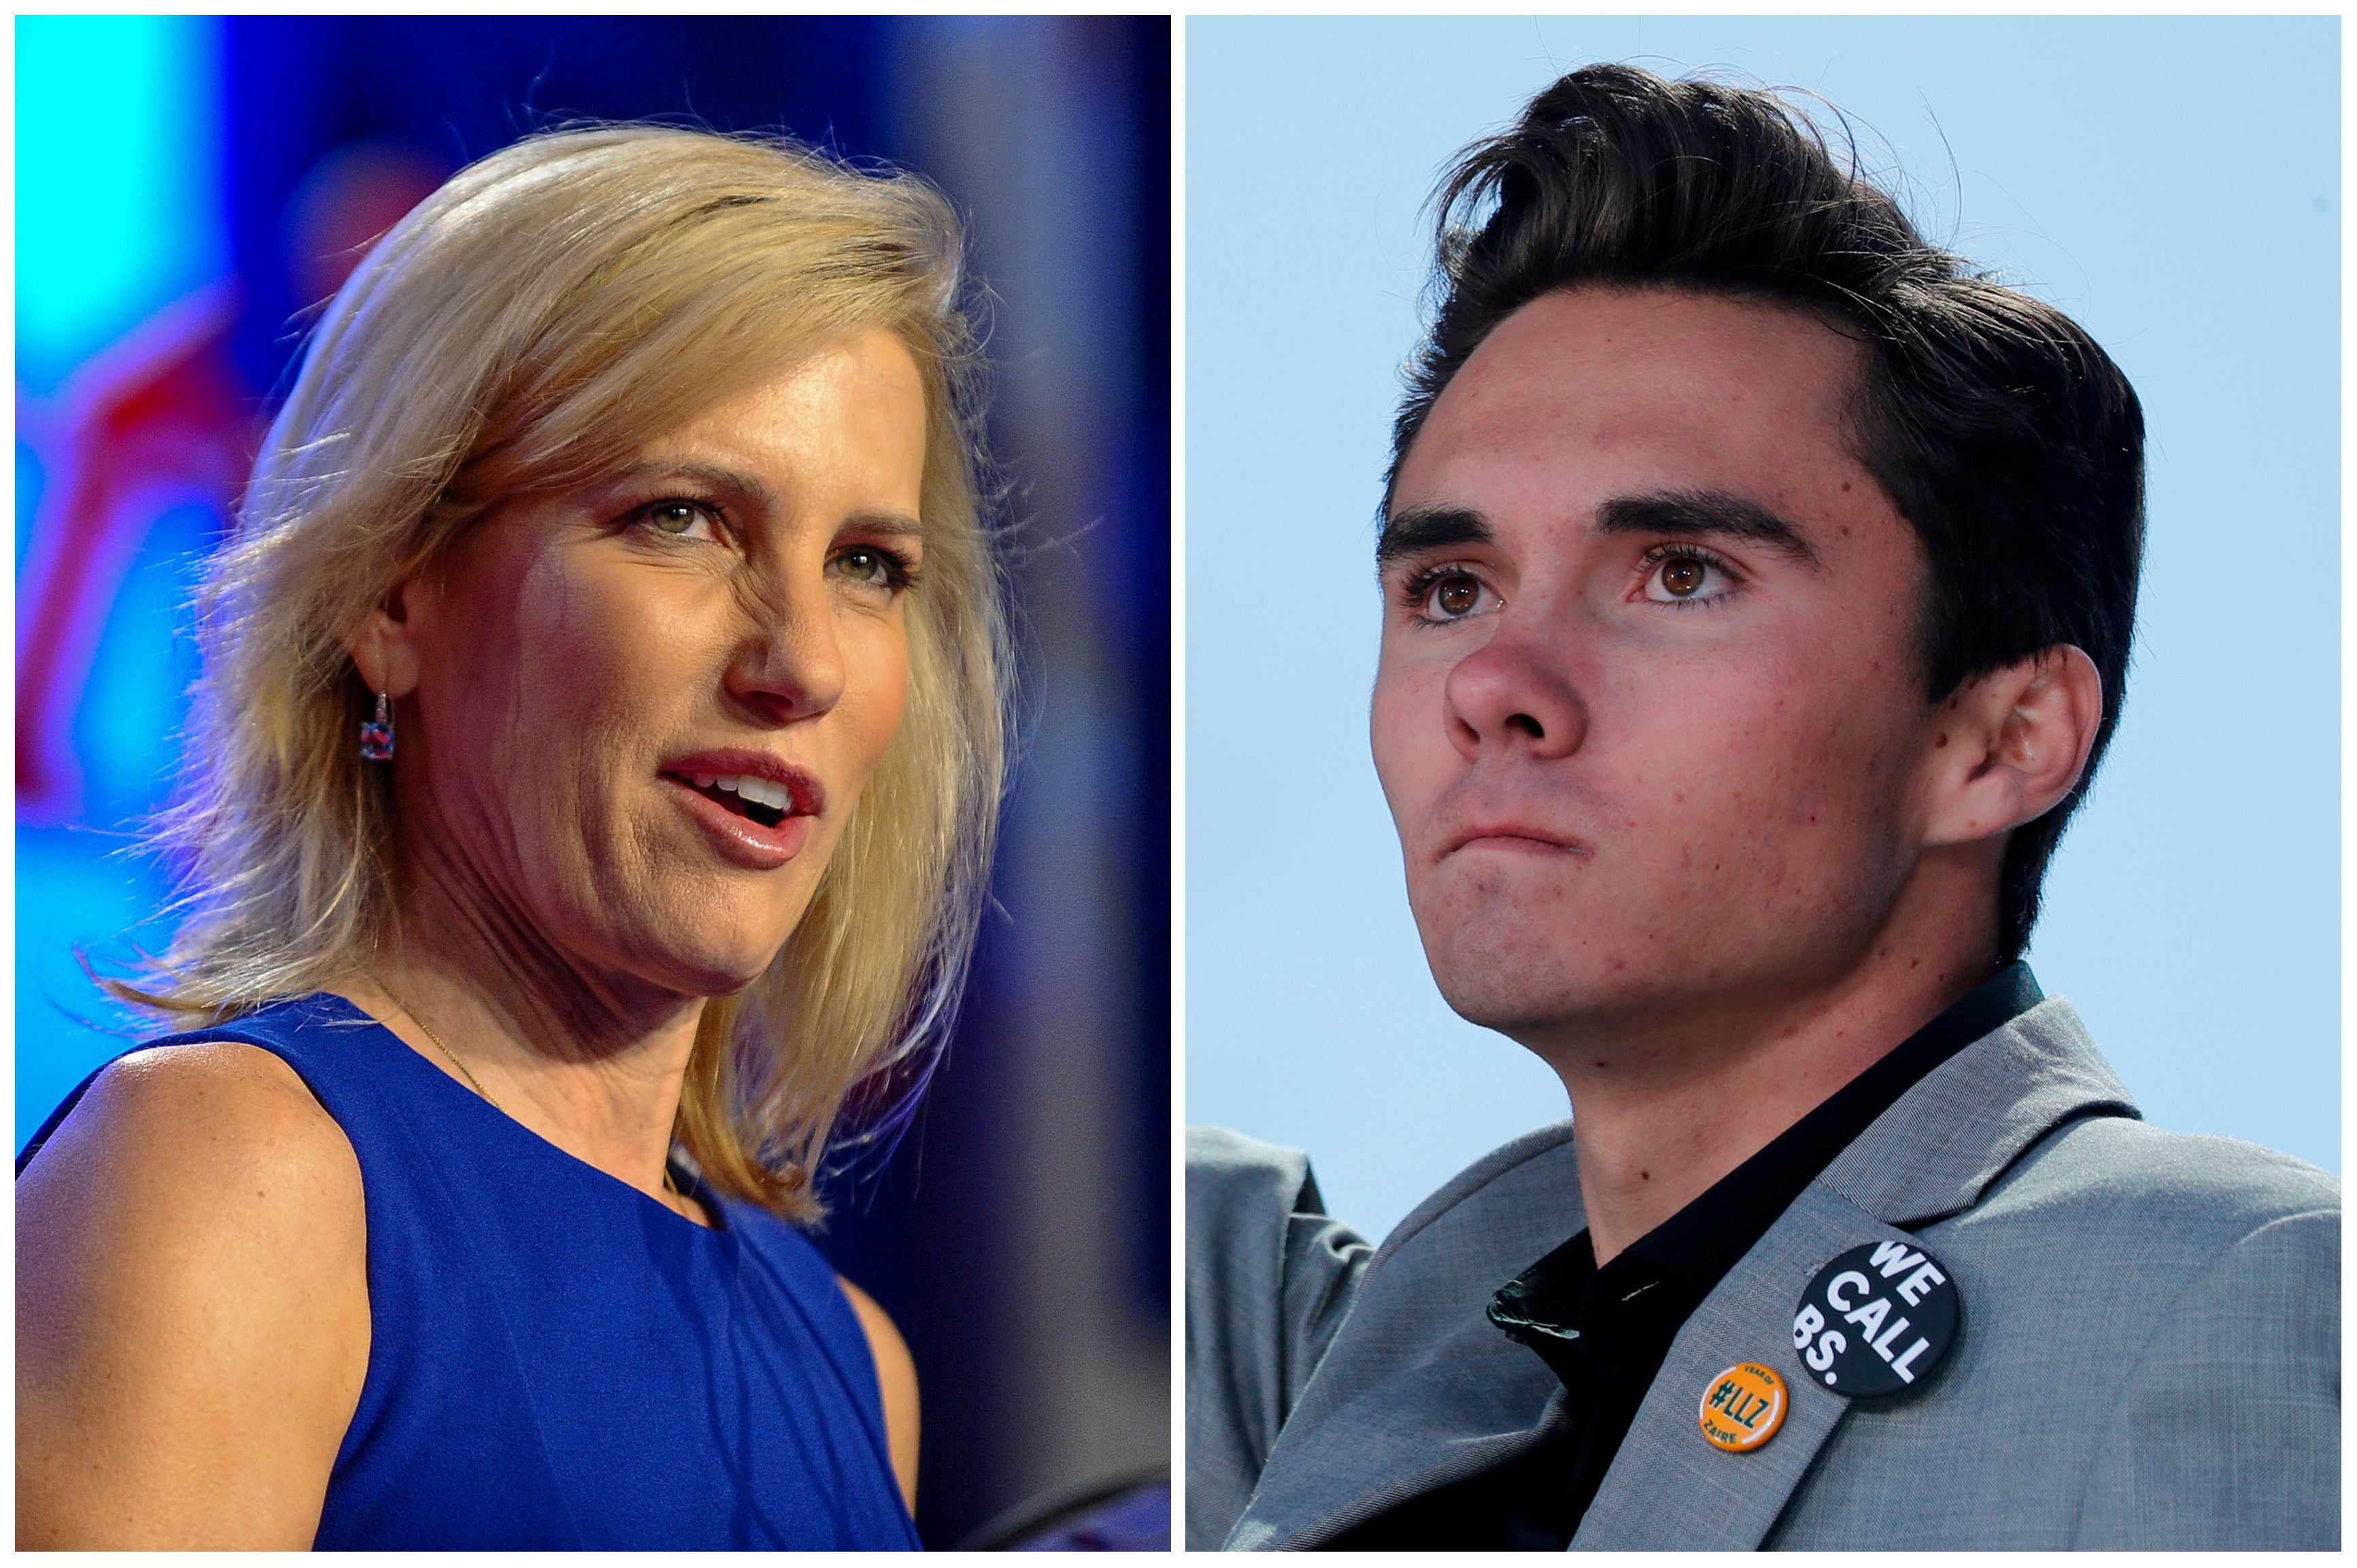 A combination of file photos show media personality Laura Ingraham in Washington October 14, 2017 and Marjory Stoneman Douglas High School student David Hogg, at a rally in Washington March 24, 2018.